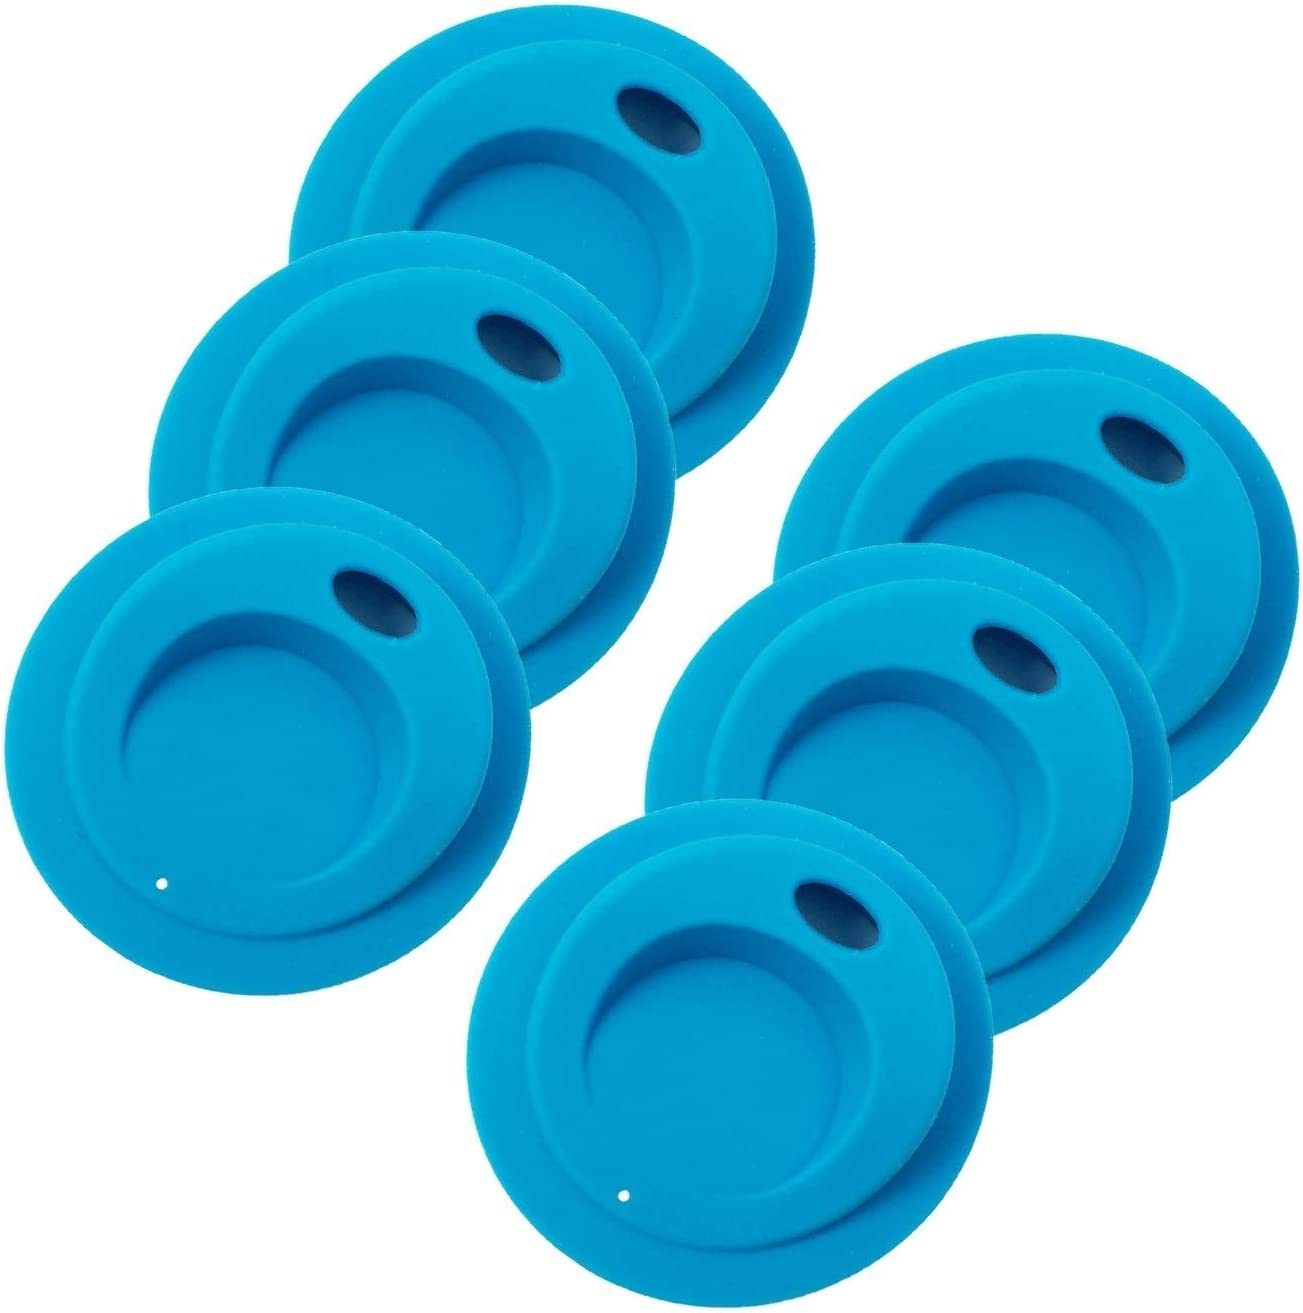 THINKCHANCES Reusable Food Grade and BPA Free Silicone Oval Straw Hole Sip Coffee Juice Drinking Lid for Mason, Ball, Canning Jars (Wide Mouth, Blue Ocean),6 Pack